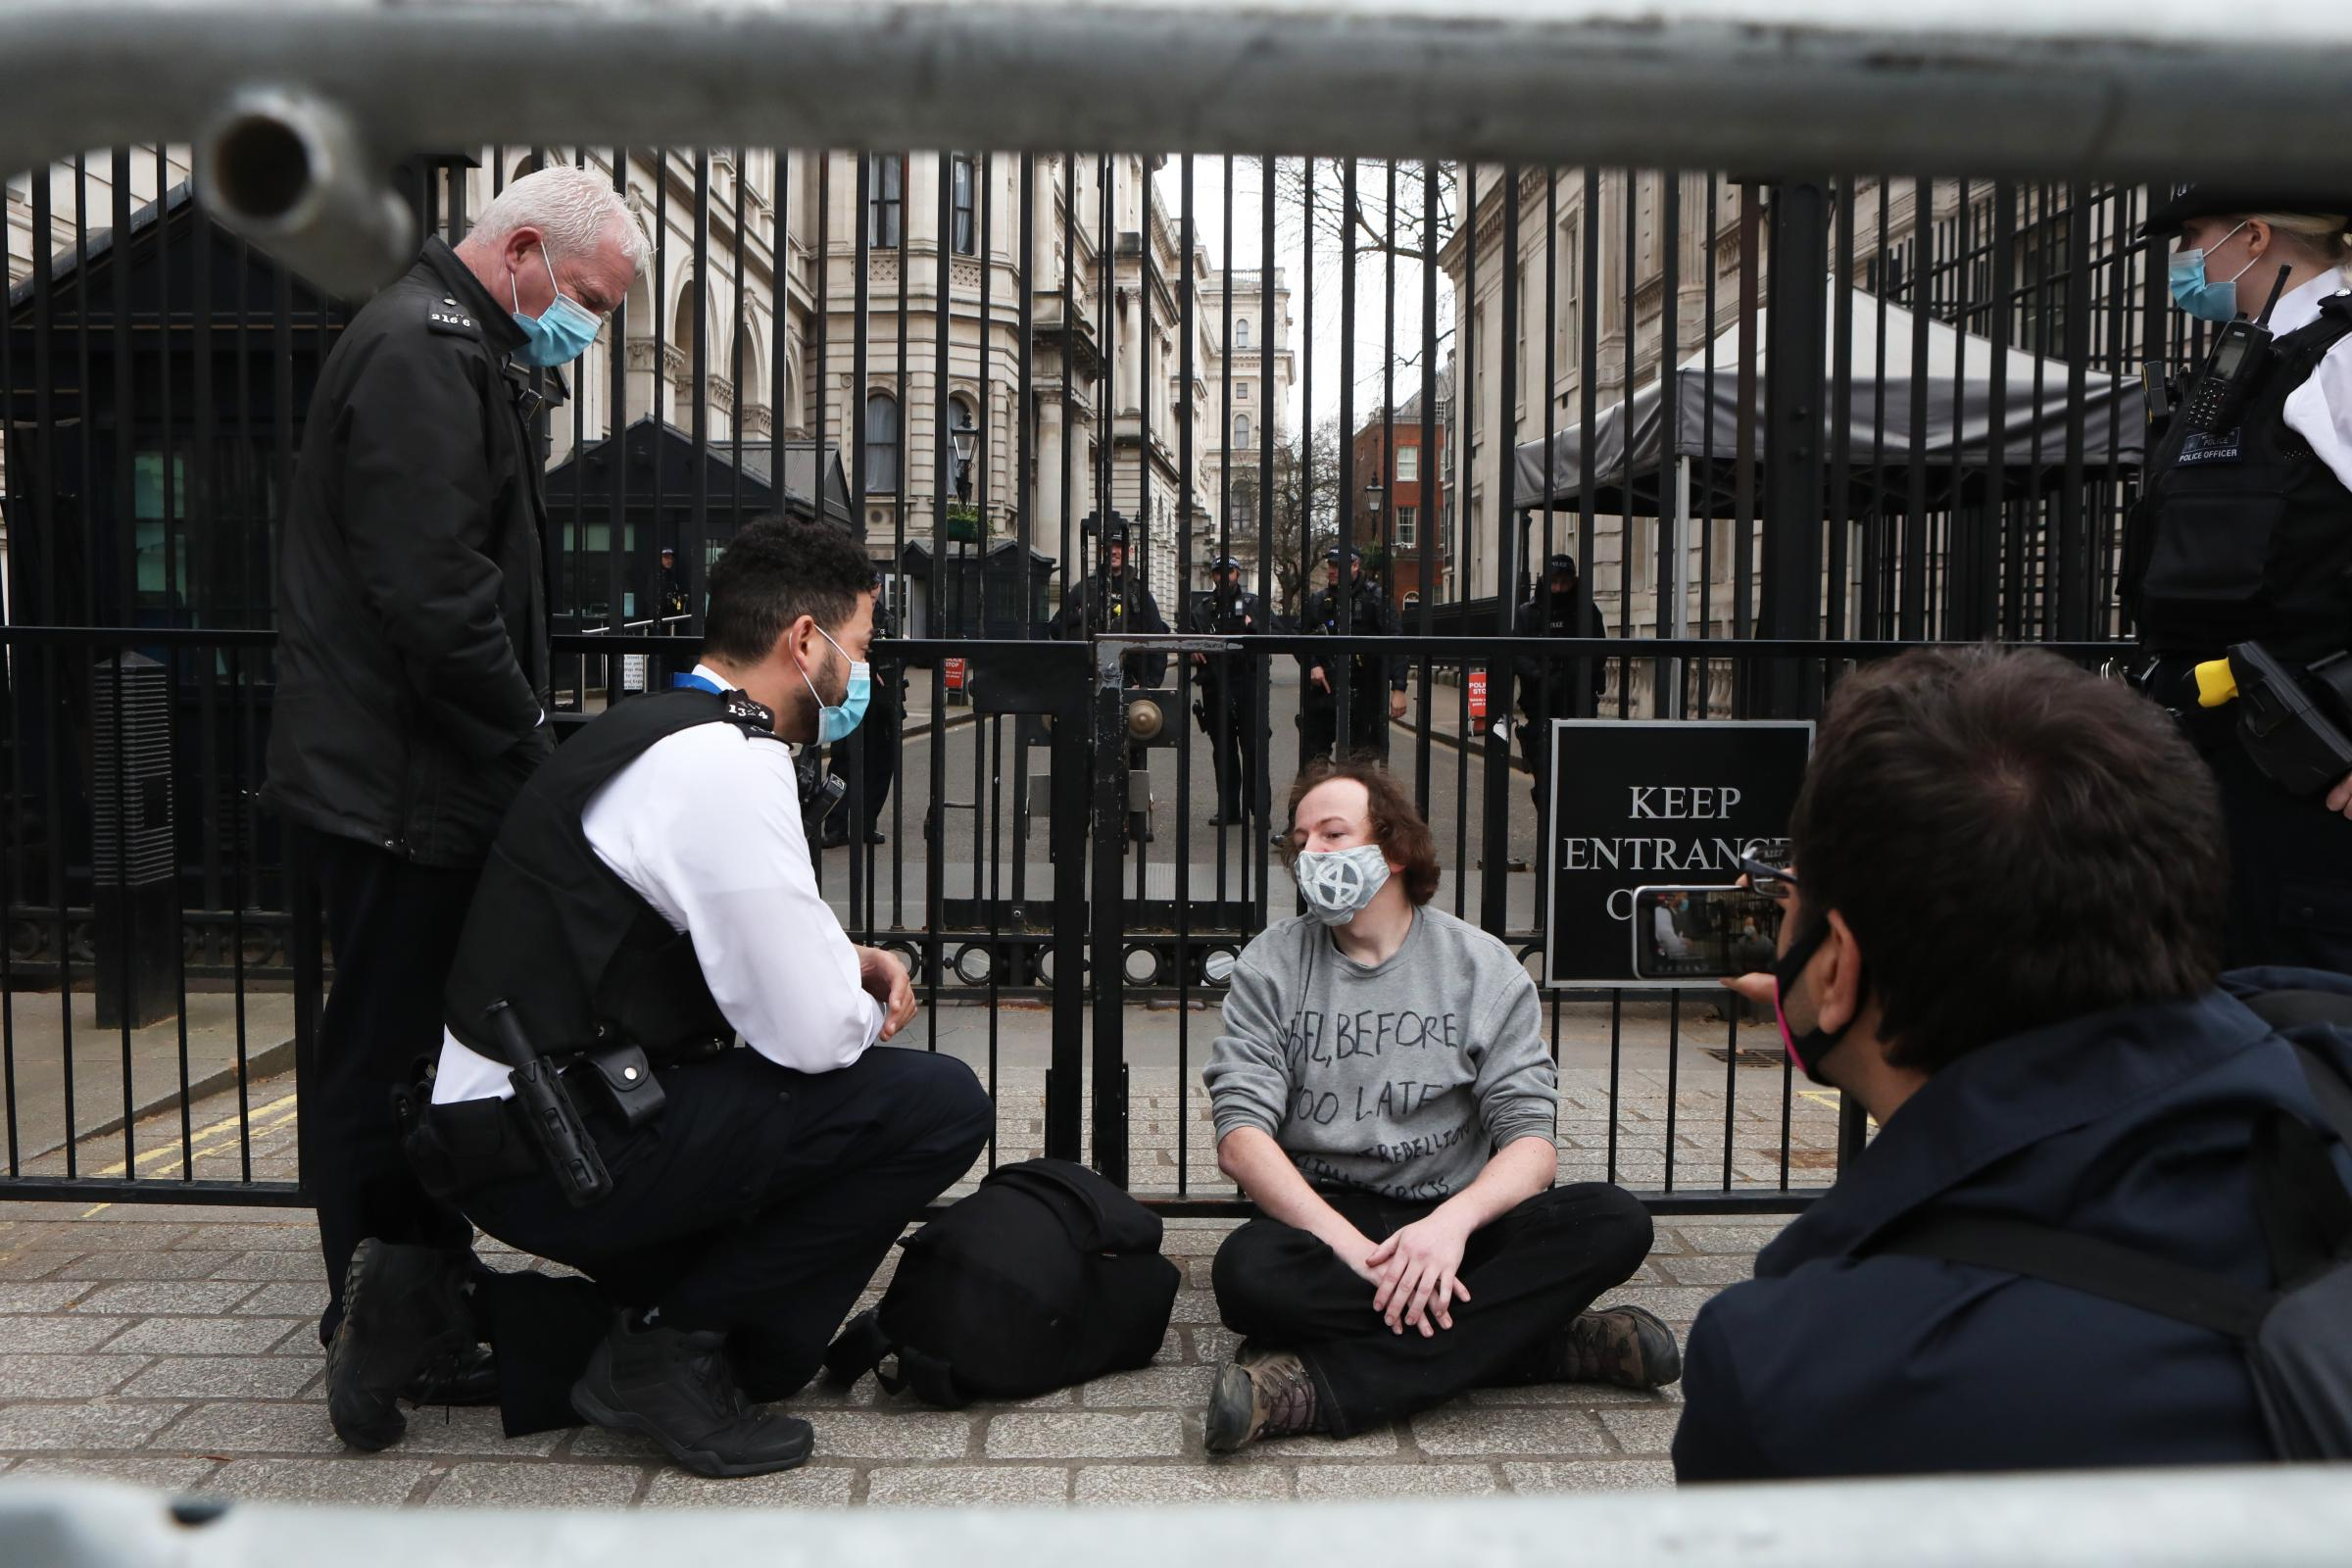 Police officers speak to a climate protester outside Downing Street in Westminster, London. Picture date: Wednesday March 24, 2021.